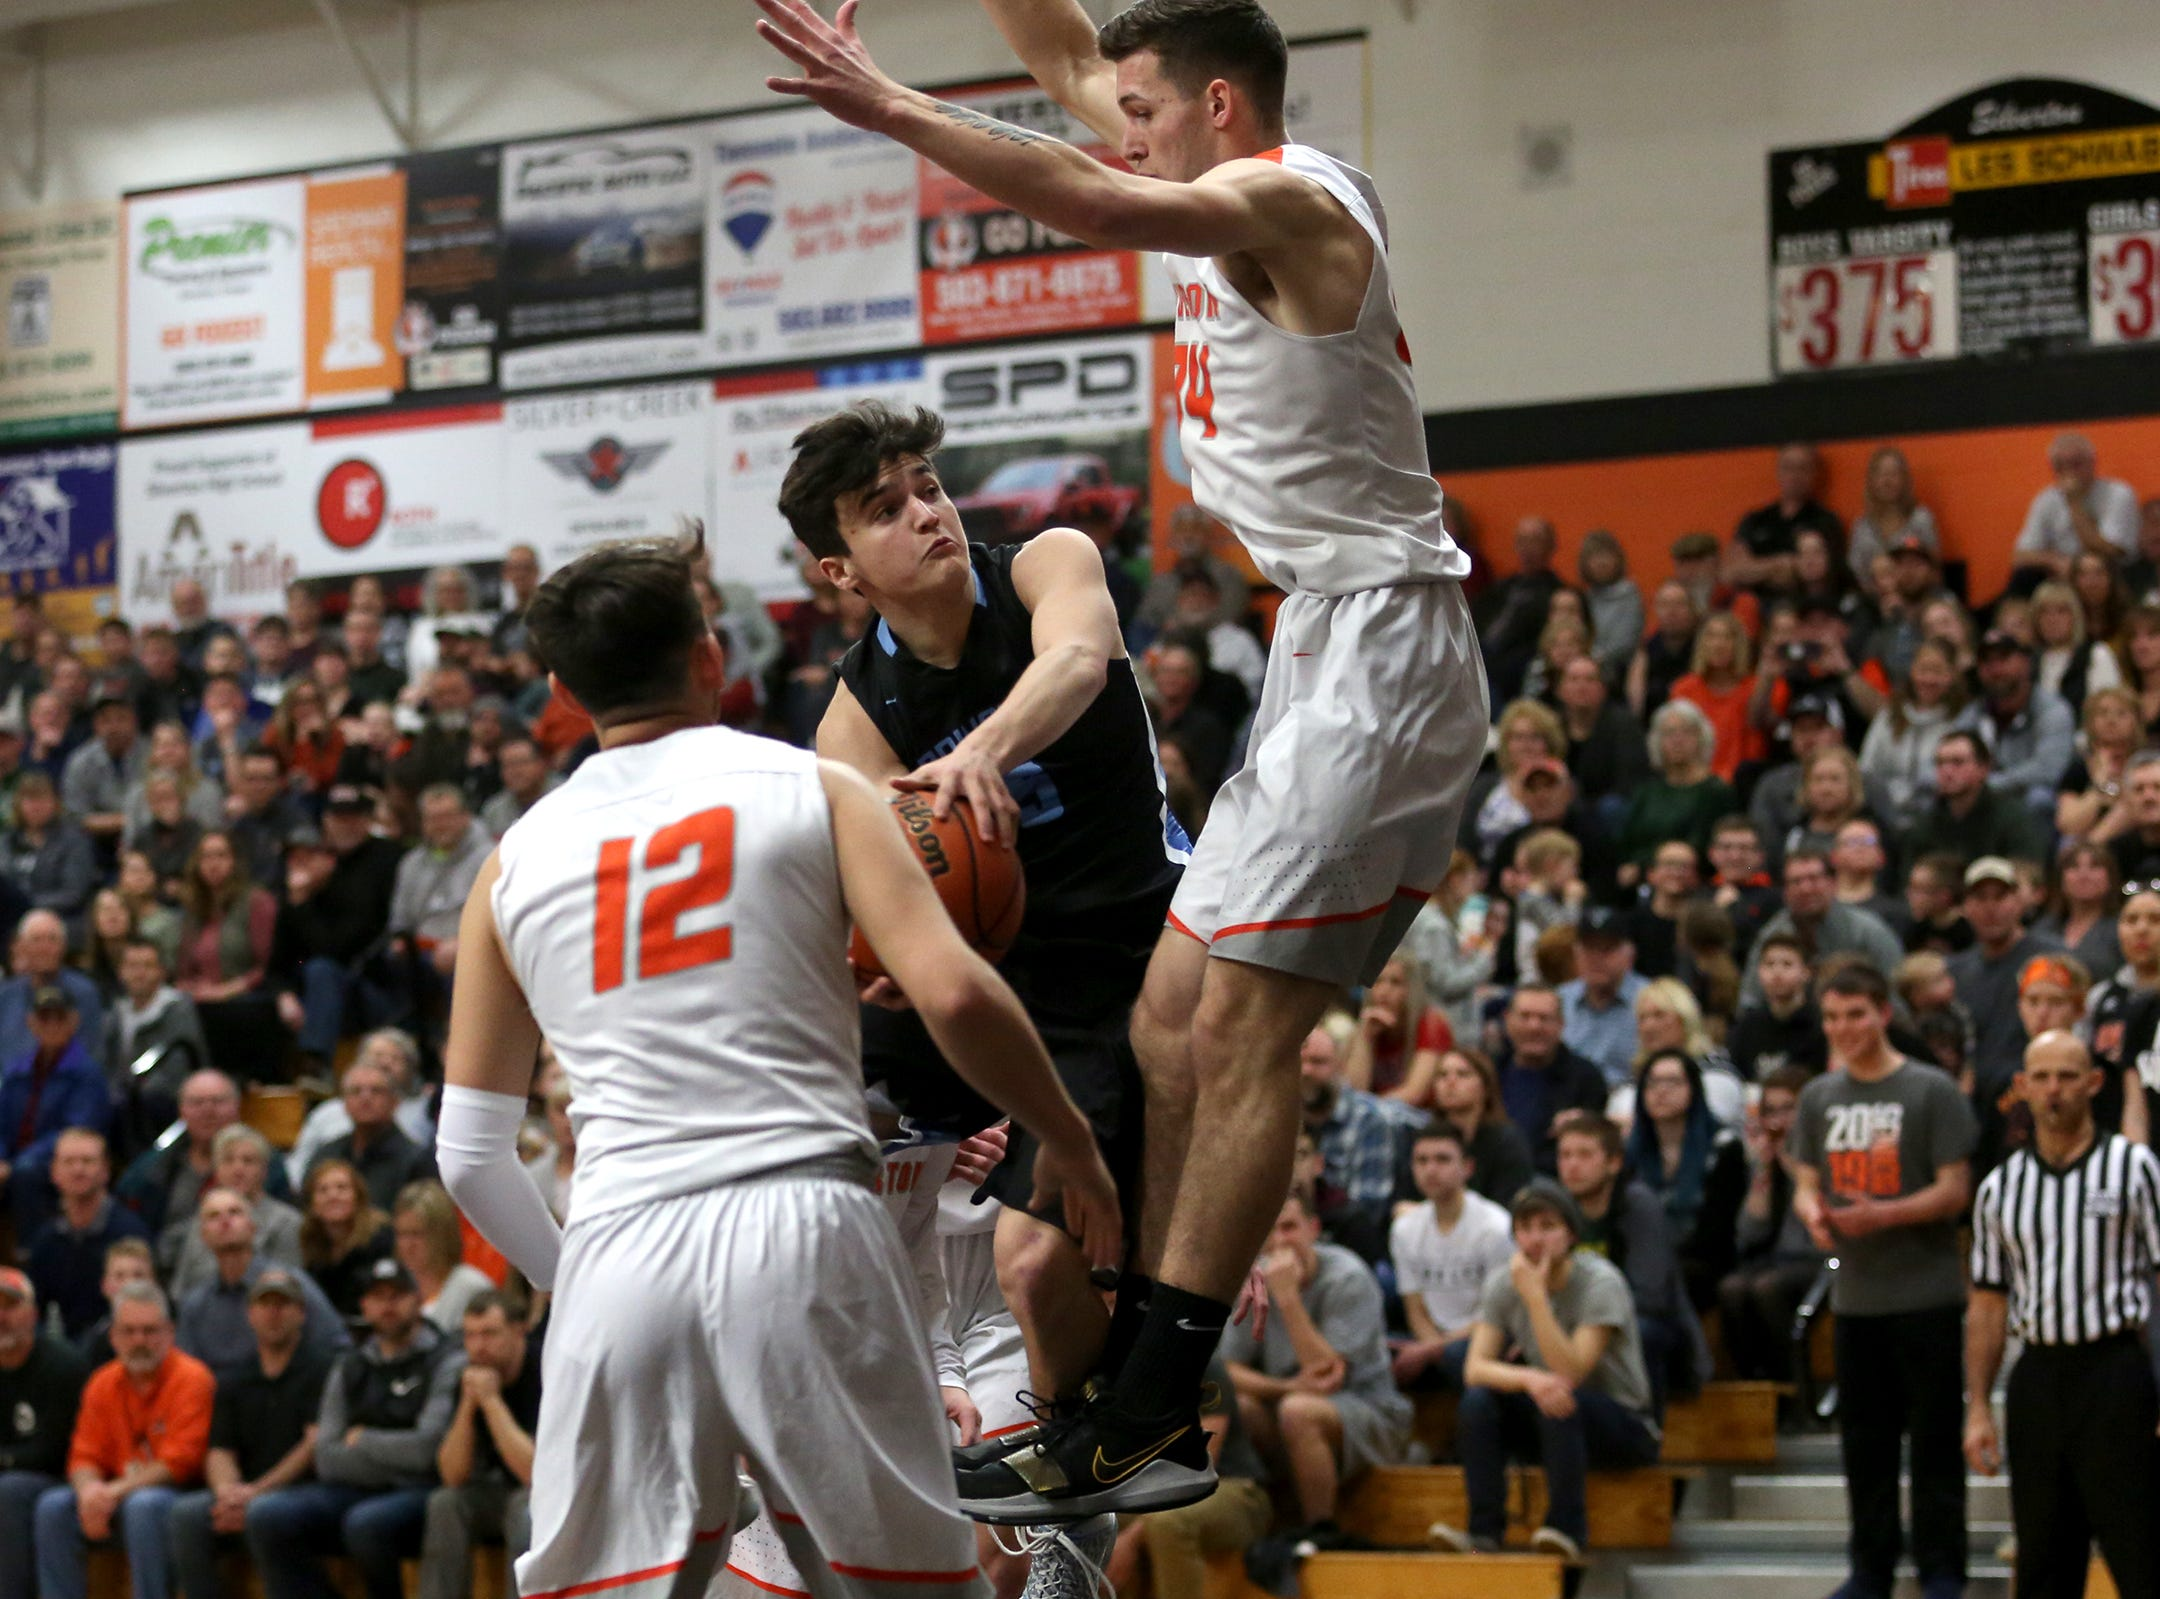 Springfield's Zack Sorber (5) attempts to get around Silverton's defense during the Silverton vs. Springfield boys basketball OSAA state playoffs game at Silverton High School in Silverton on Saturday, March 2, 2019.